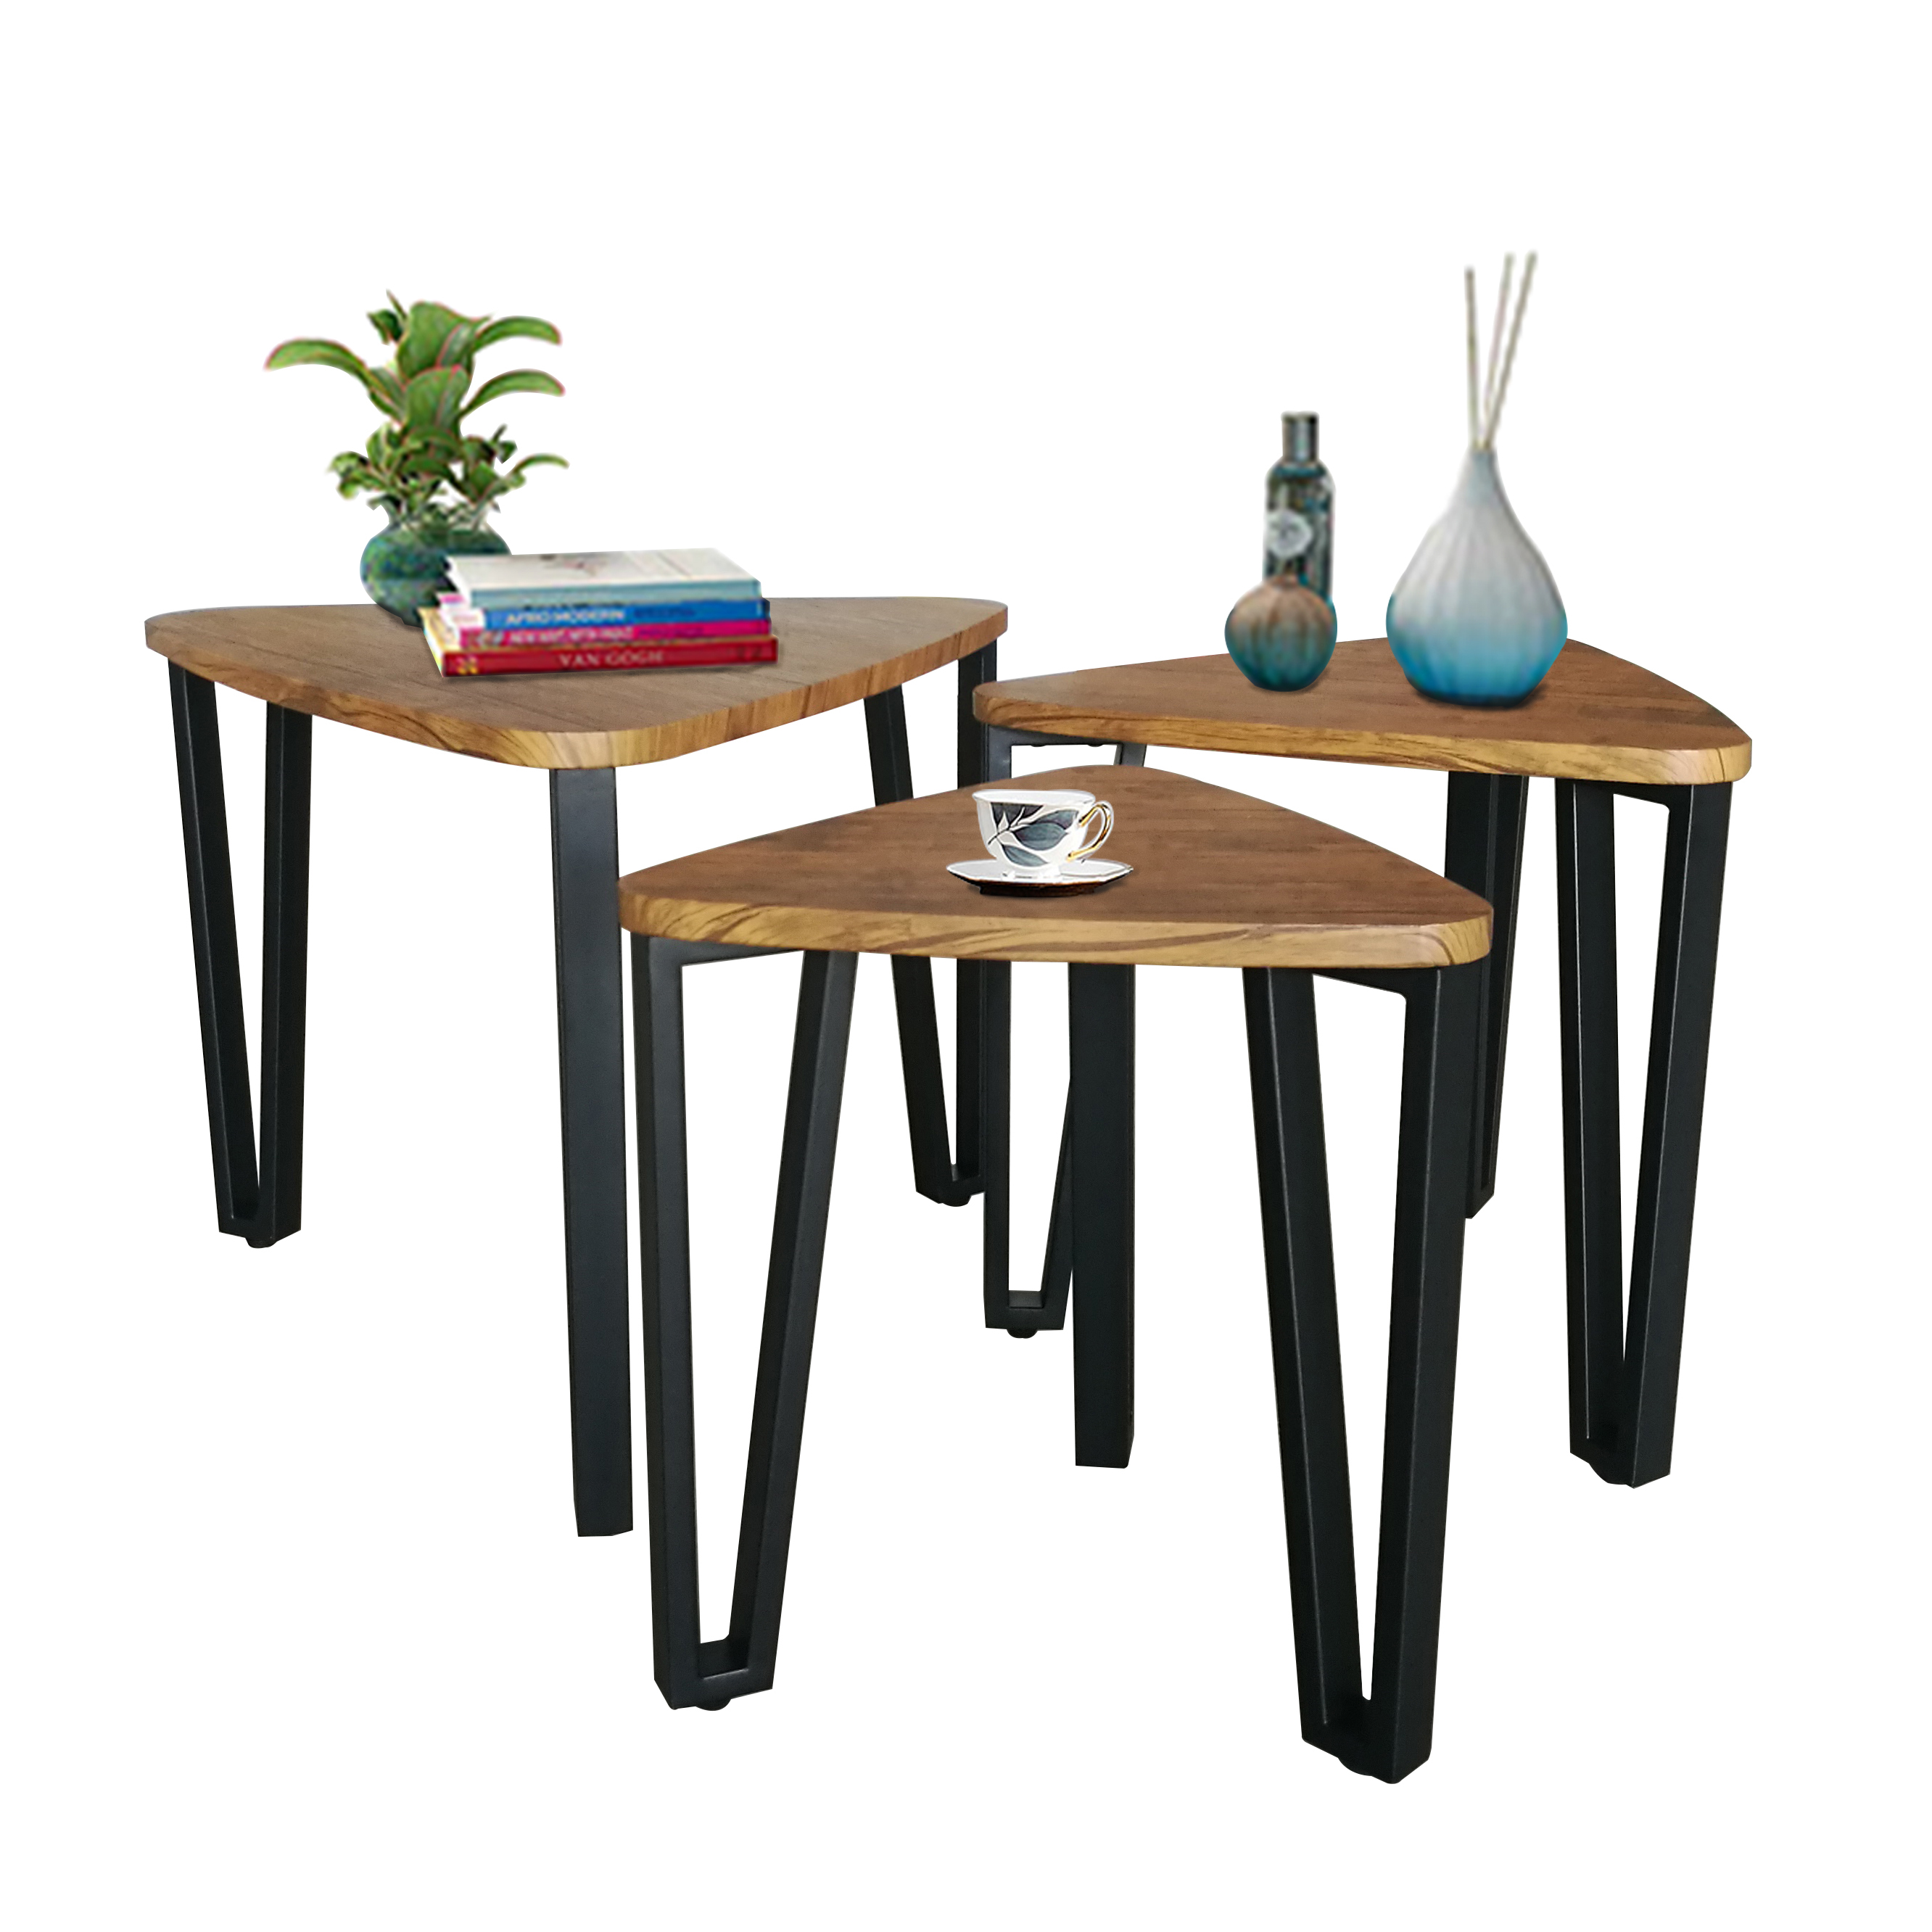 three set modern centre rustic wooden nordic tea sneak end metal frame triangle geometric nesting small side coffee <strong>table</strong>